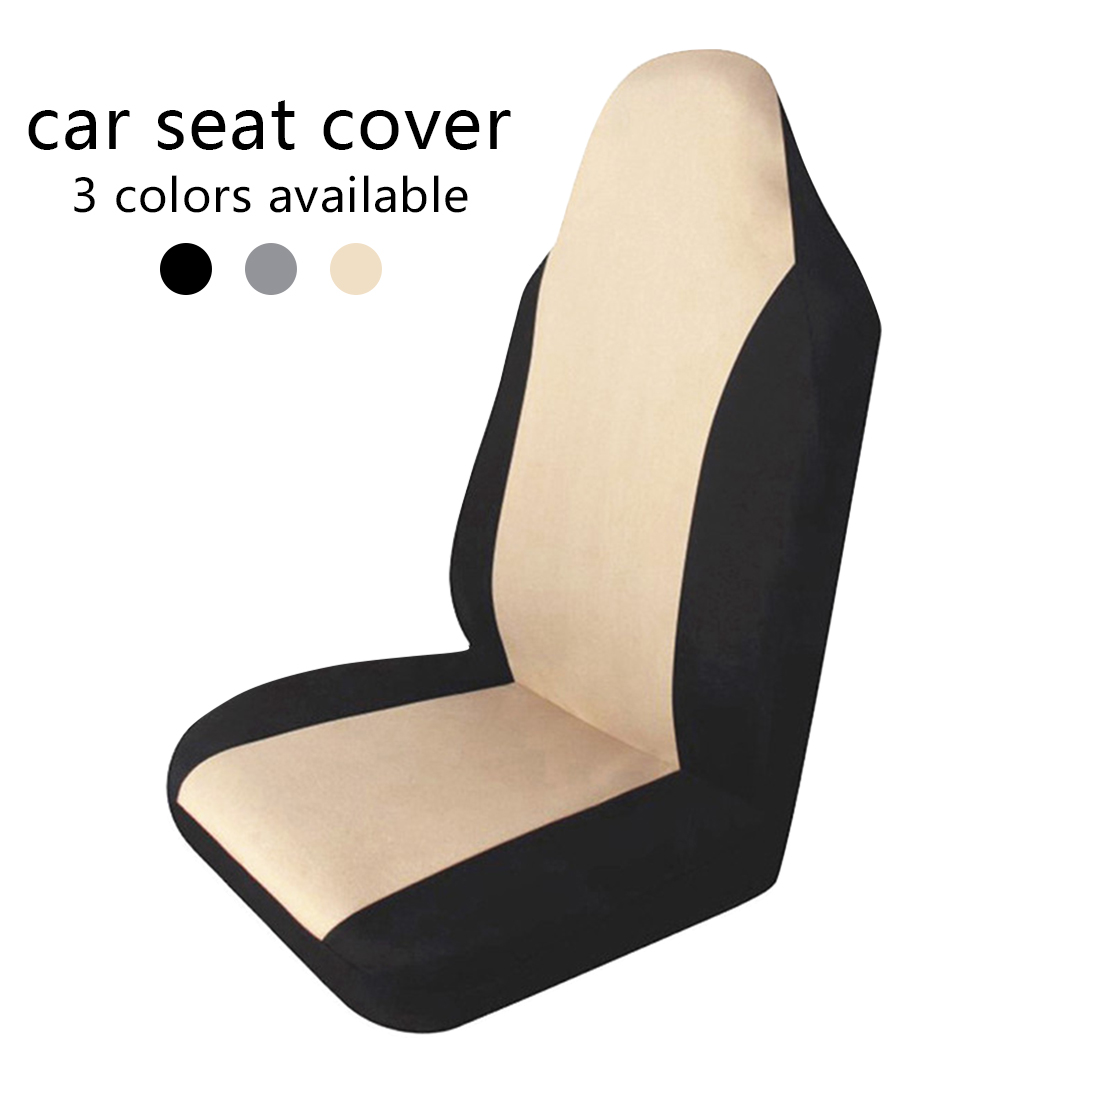 Dewtreelita Car Seat Cover One-piece Universal Seat Cushion Breathable Anti-Dust Auto Seat Cushion Mat Protective for Car SUV car seat